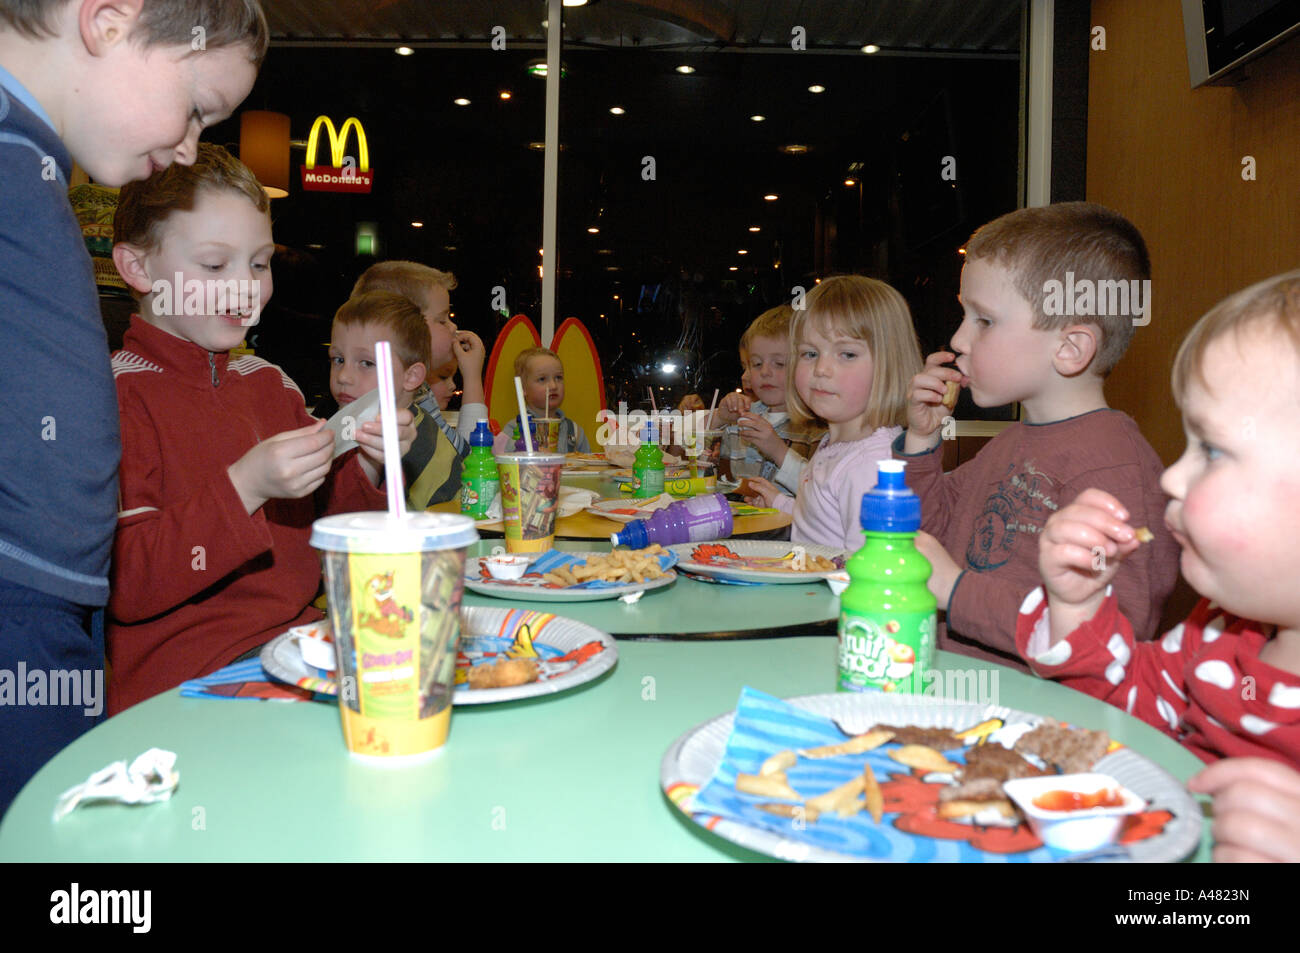 I Bambini S Festa Di Compleanno Mcdonalds Haverfordwest